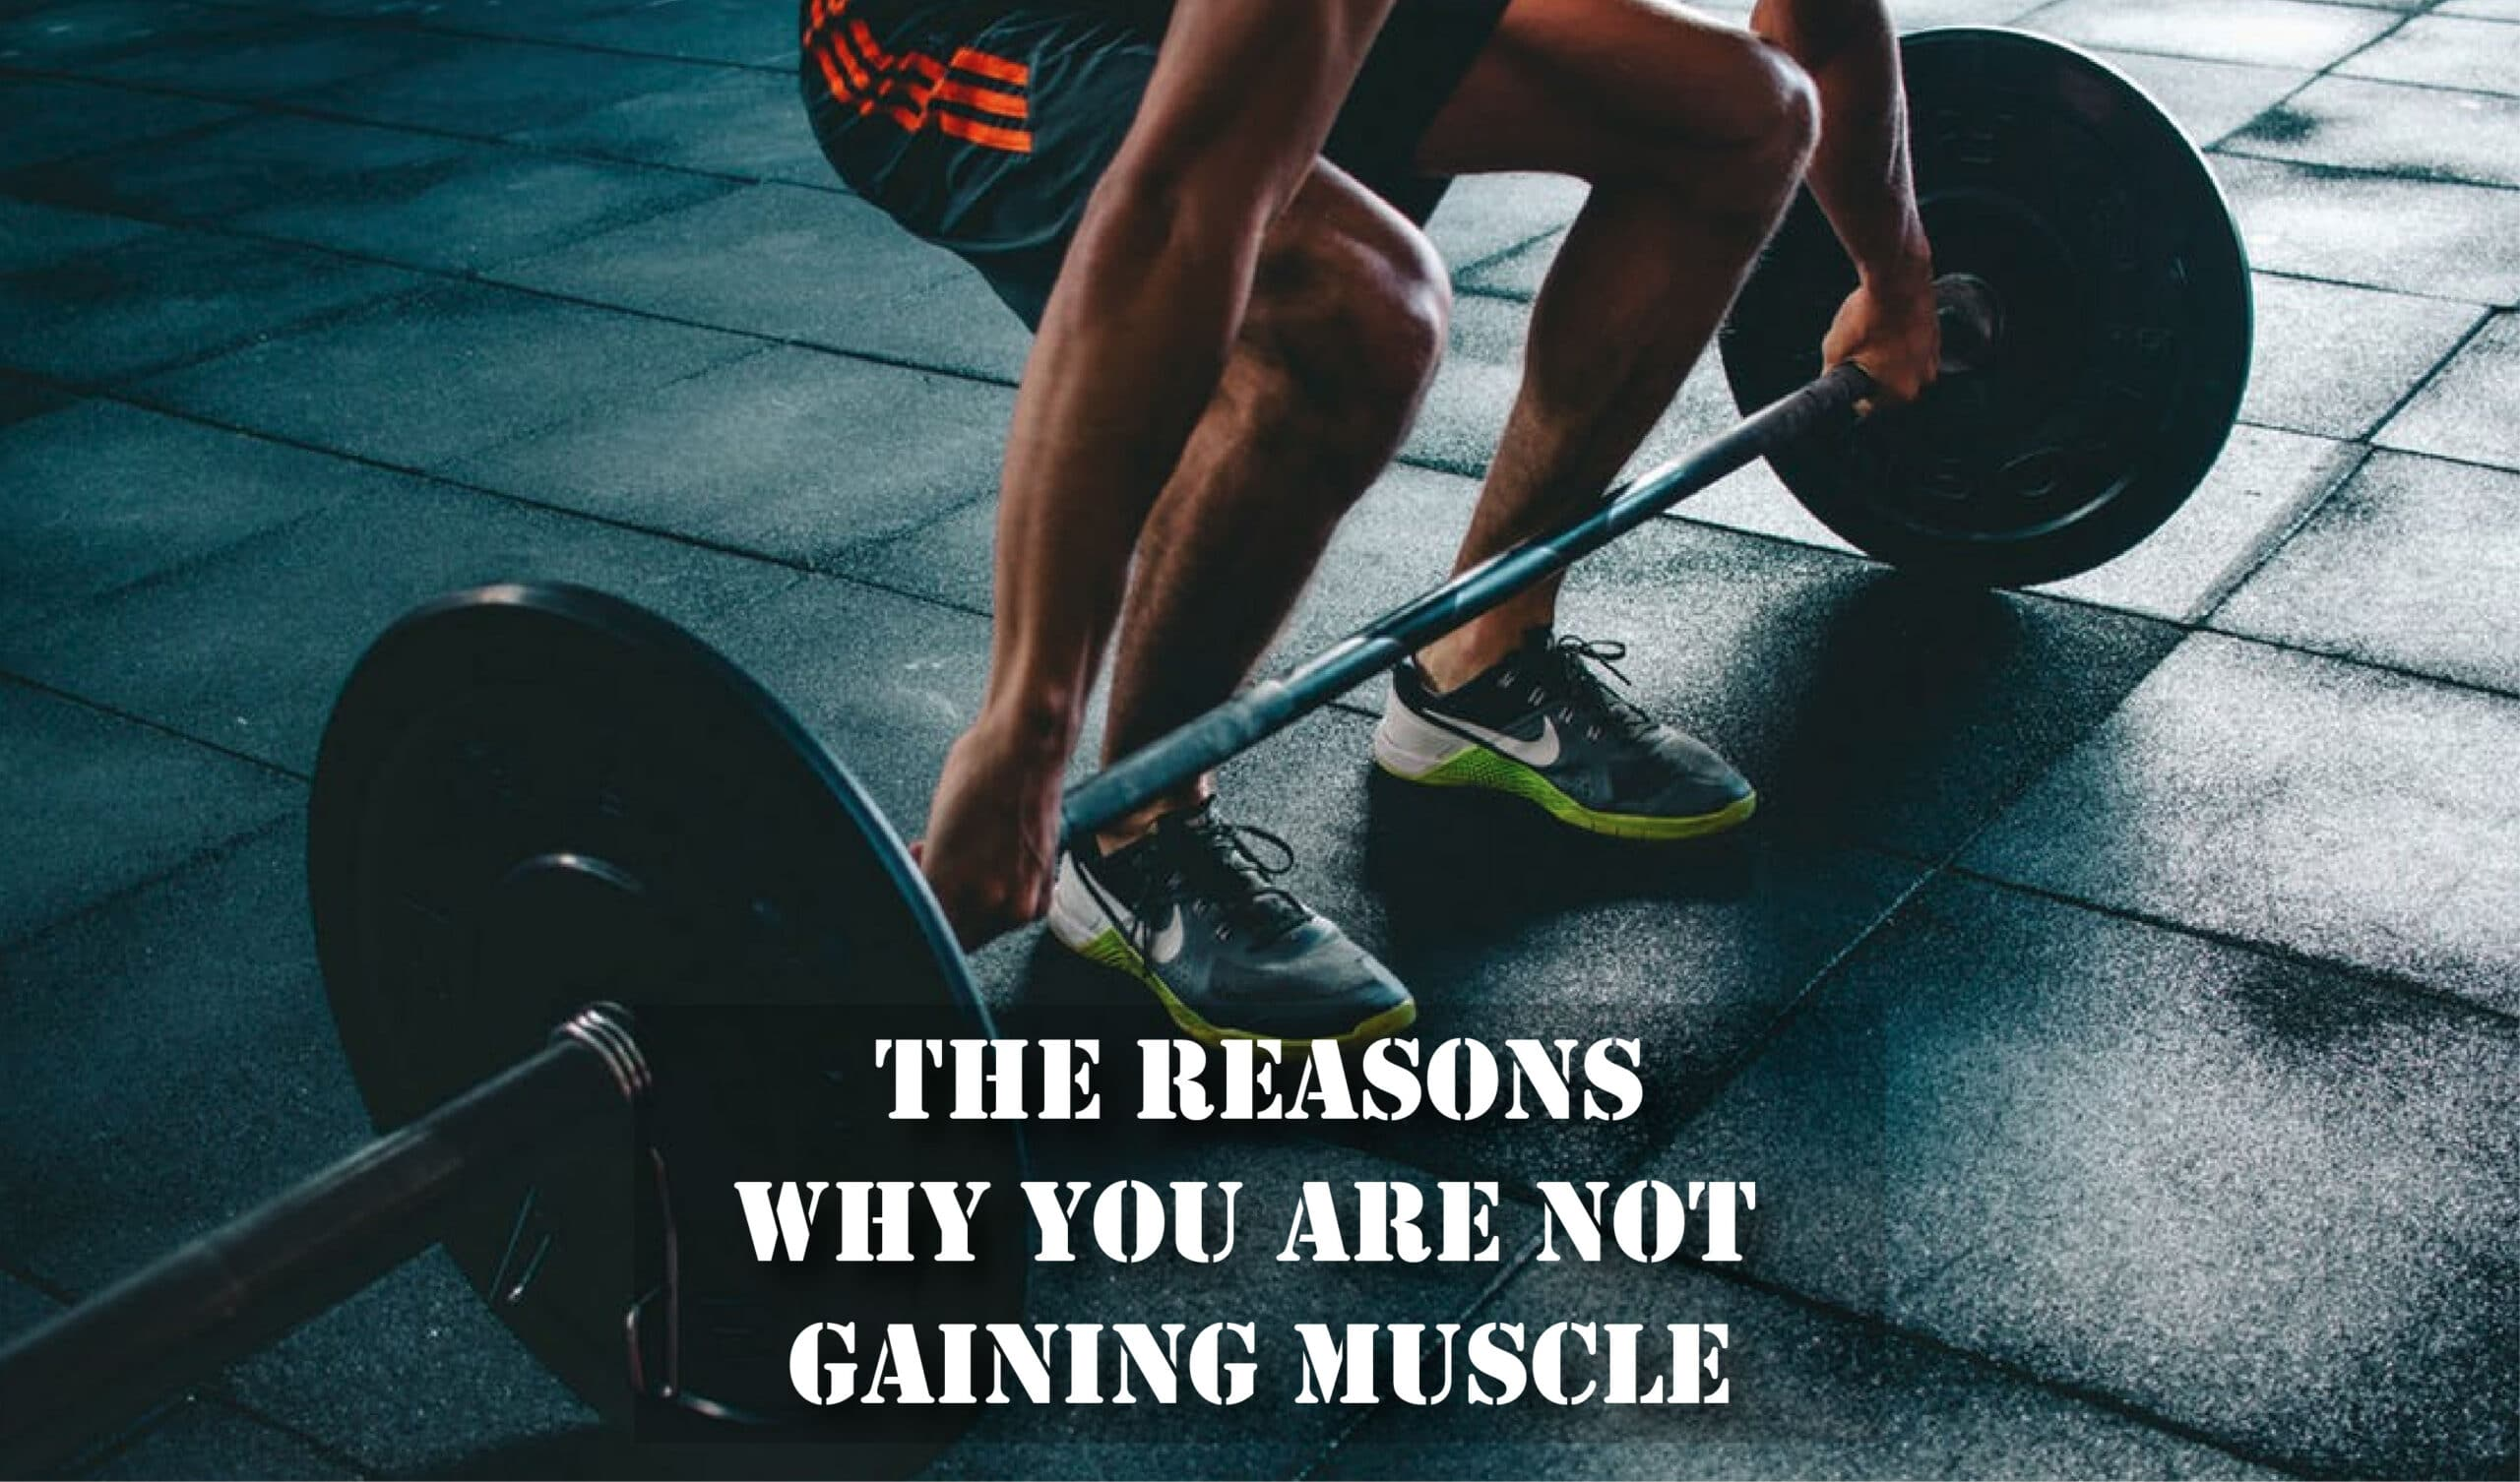 The Reasons Why You Are Not Gaining Muscle